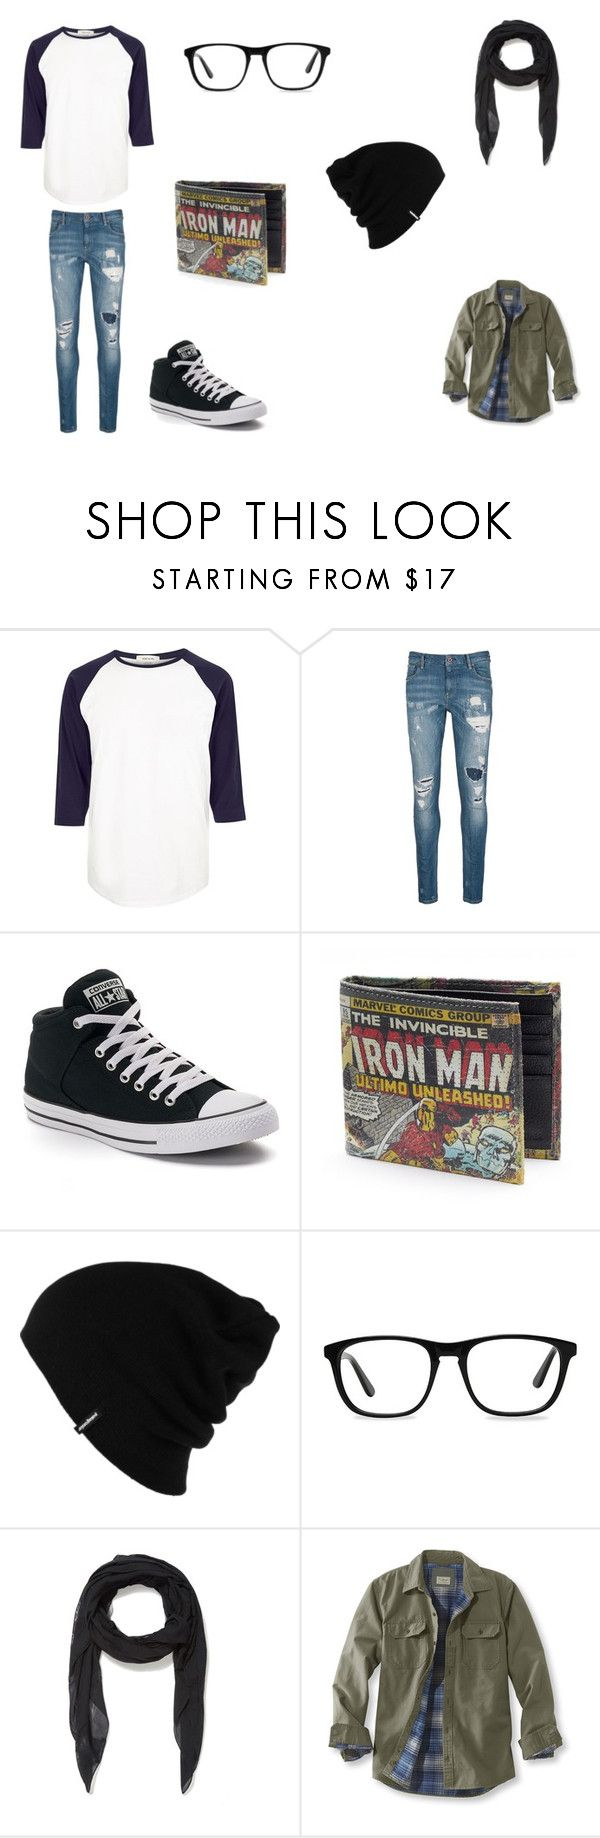 """""""Simple Guy's Outfit"""" by cinnabunphil on Polyvore featuring River Island, Scotch & Soda, Converse, Patagonia, Ace, McQ by Alexander McQueen, L.L.Bean, men's fashion and menswear"""